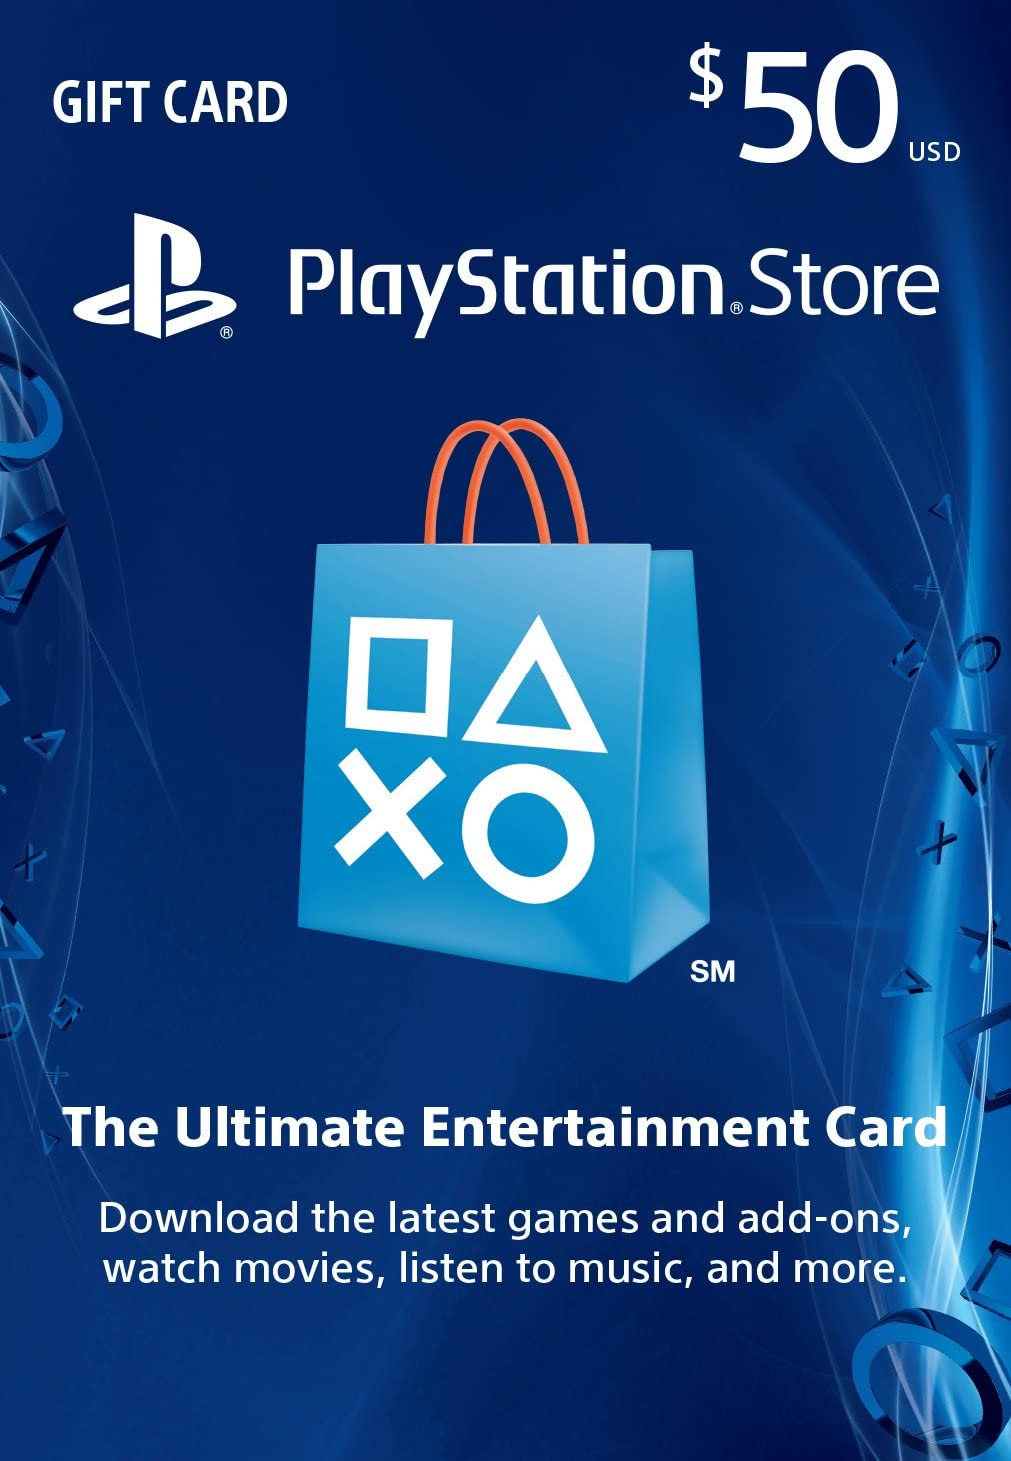 Unused 3ds points card codes - Amazon Com 20 Playstation Store Gift Card Ps3 Ps4 Ps Vita Digital Code Video Games